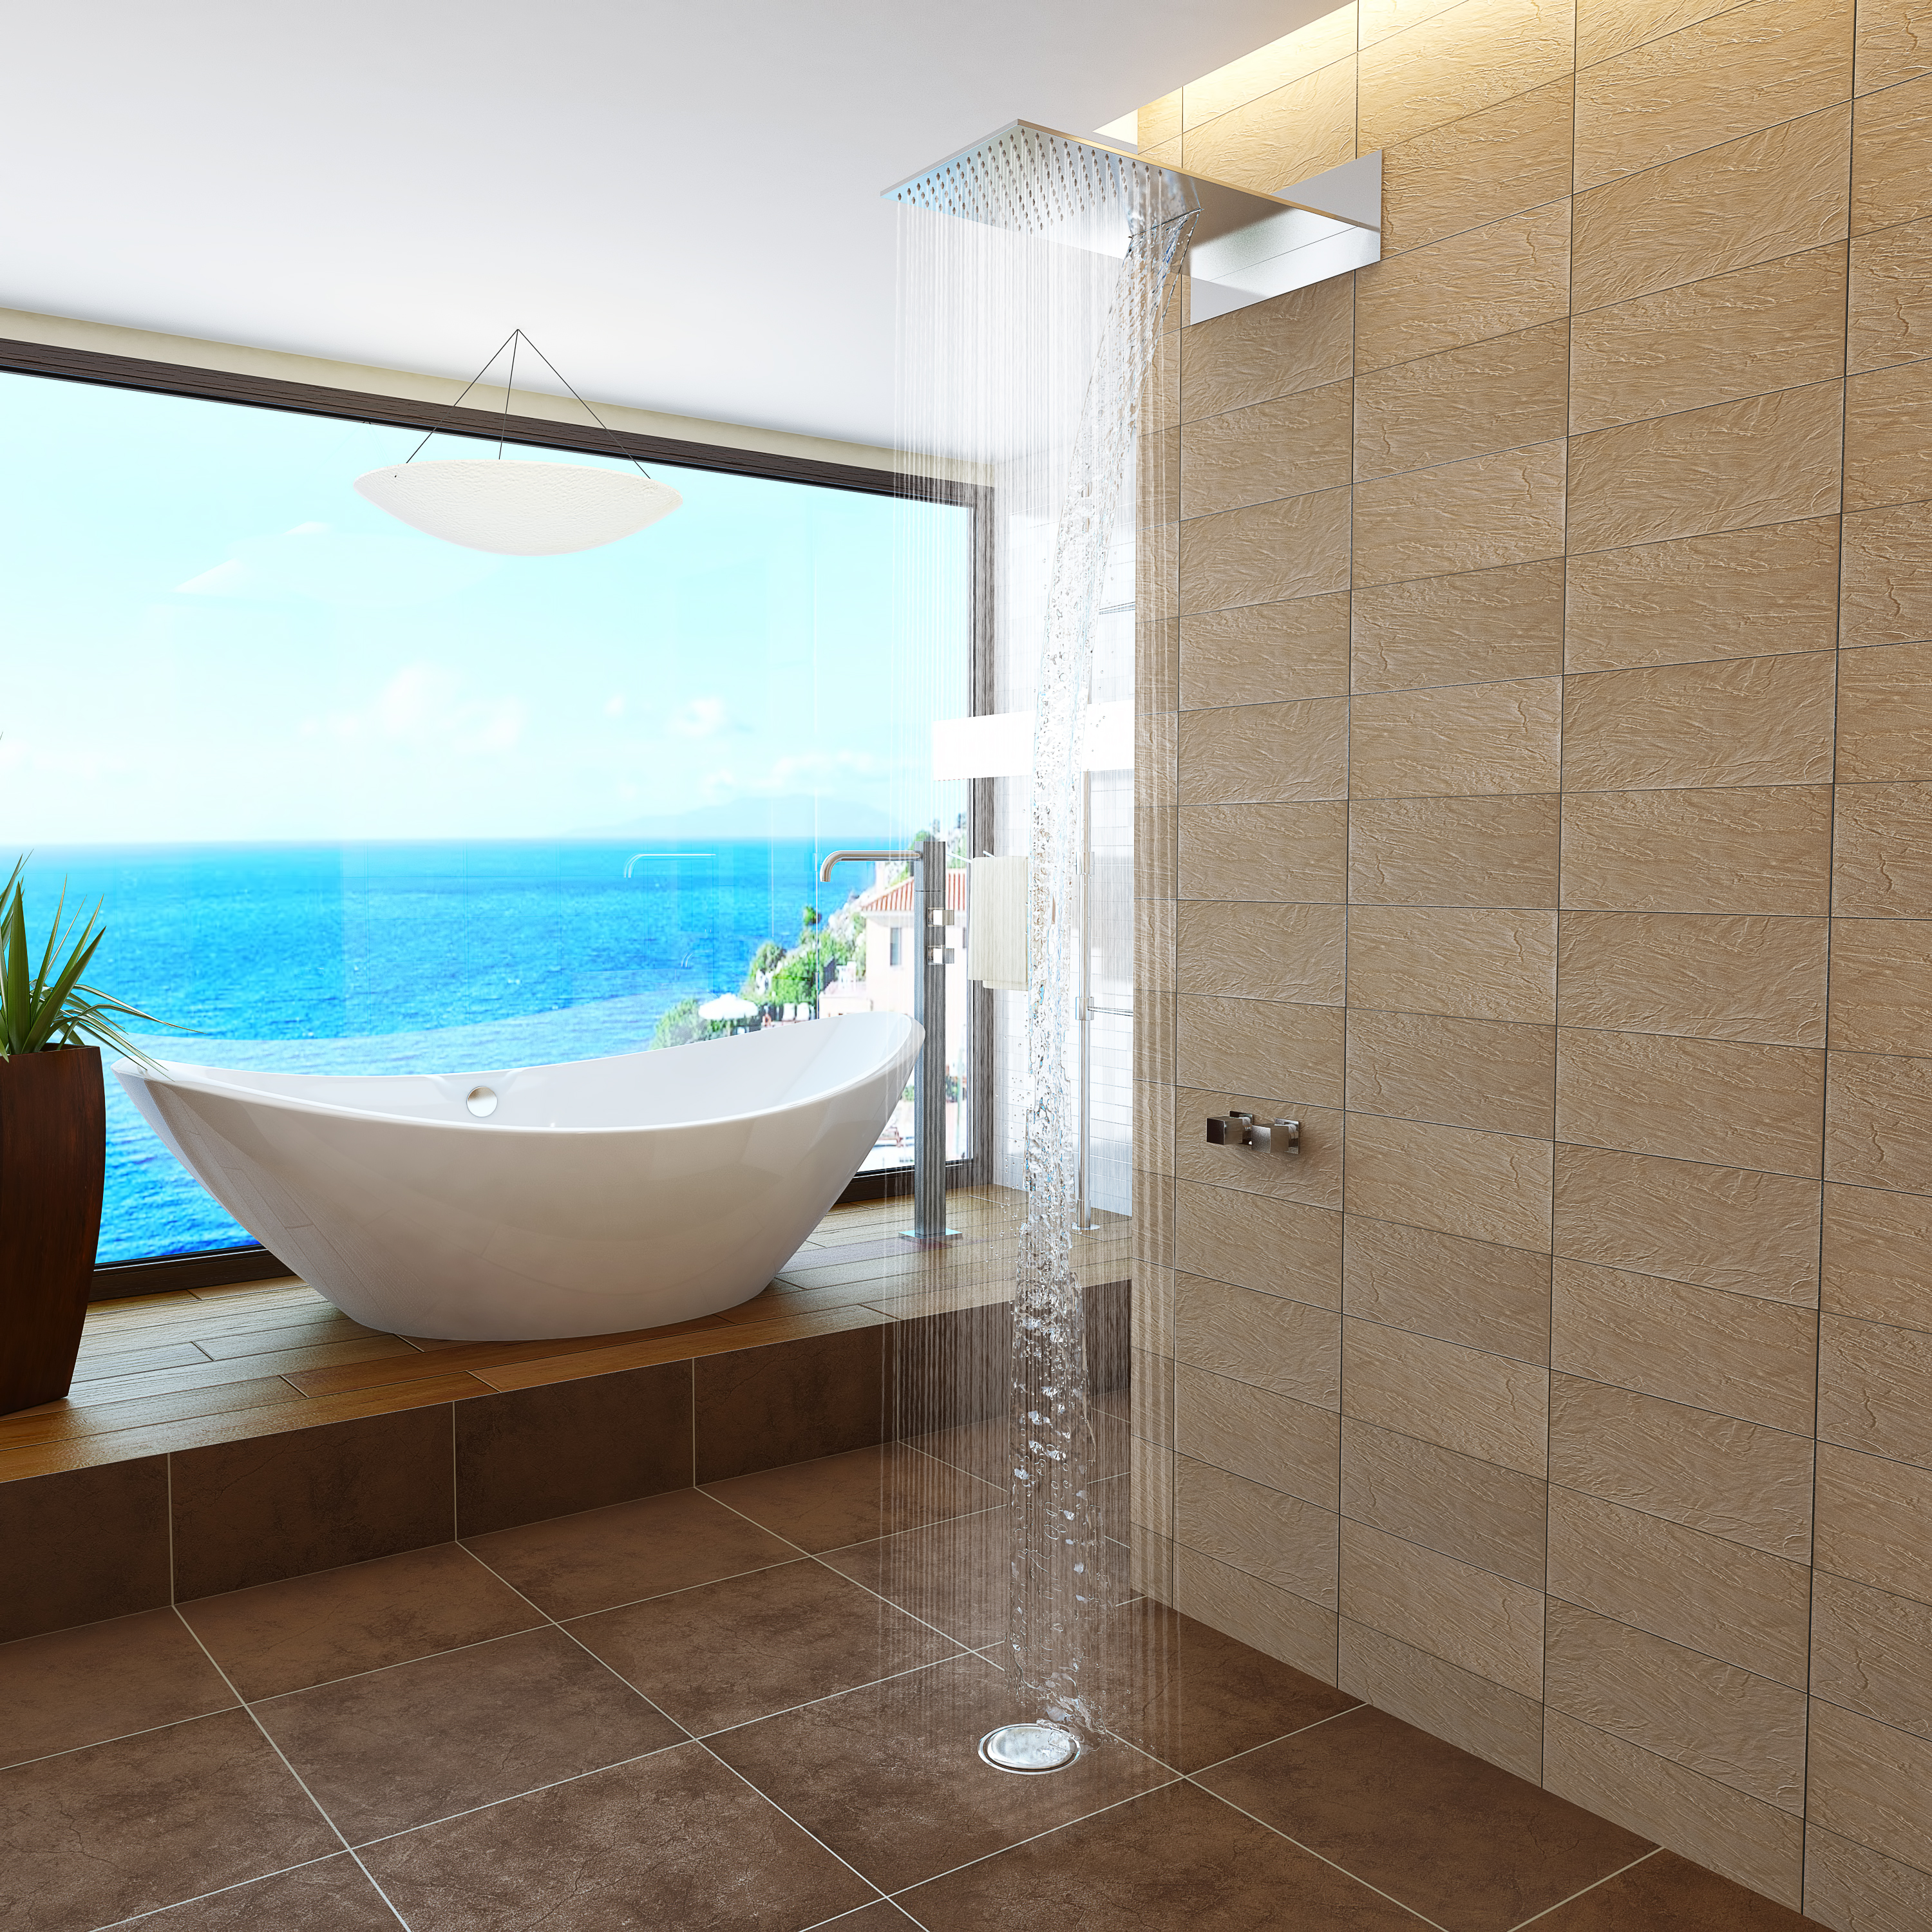 waterfall collection hydrosystems image bathroom a bathtub products house modern download metro in biscayne byscayne freestanding big rendering